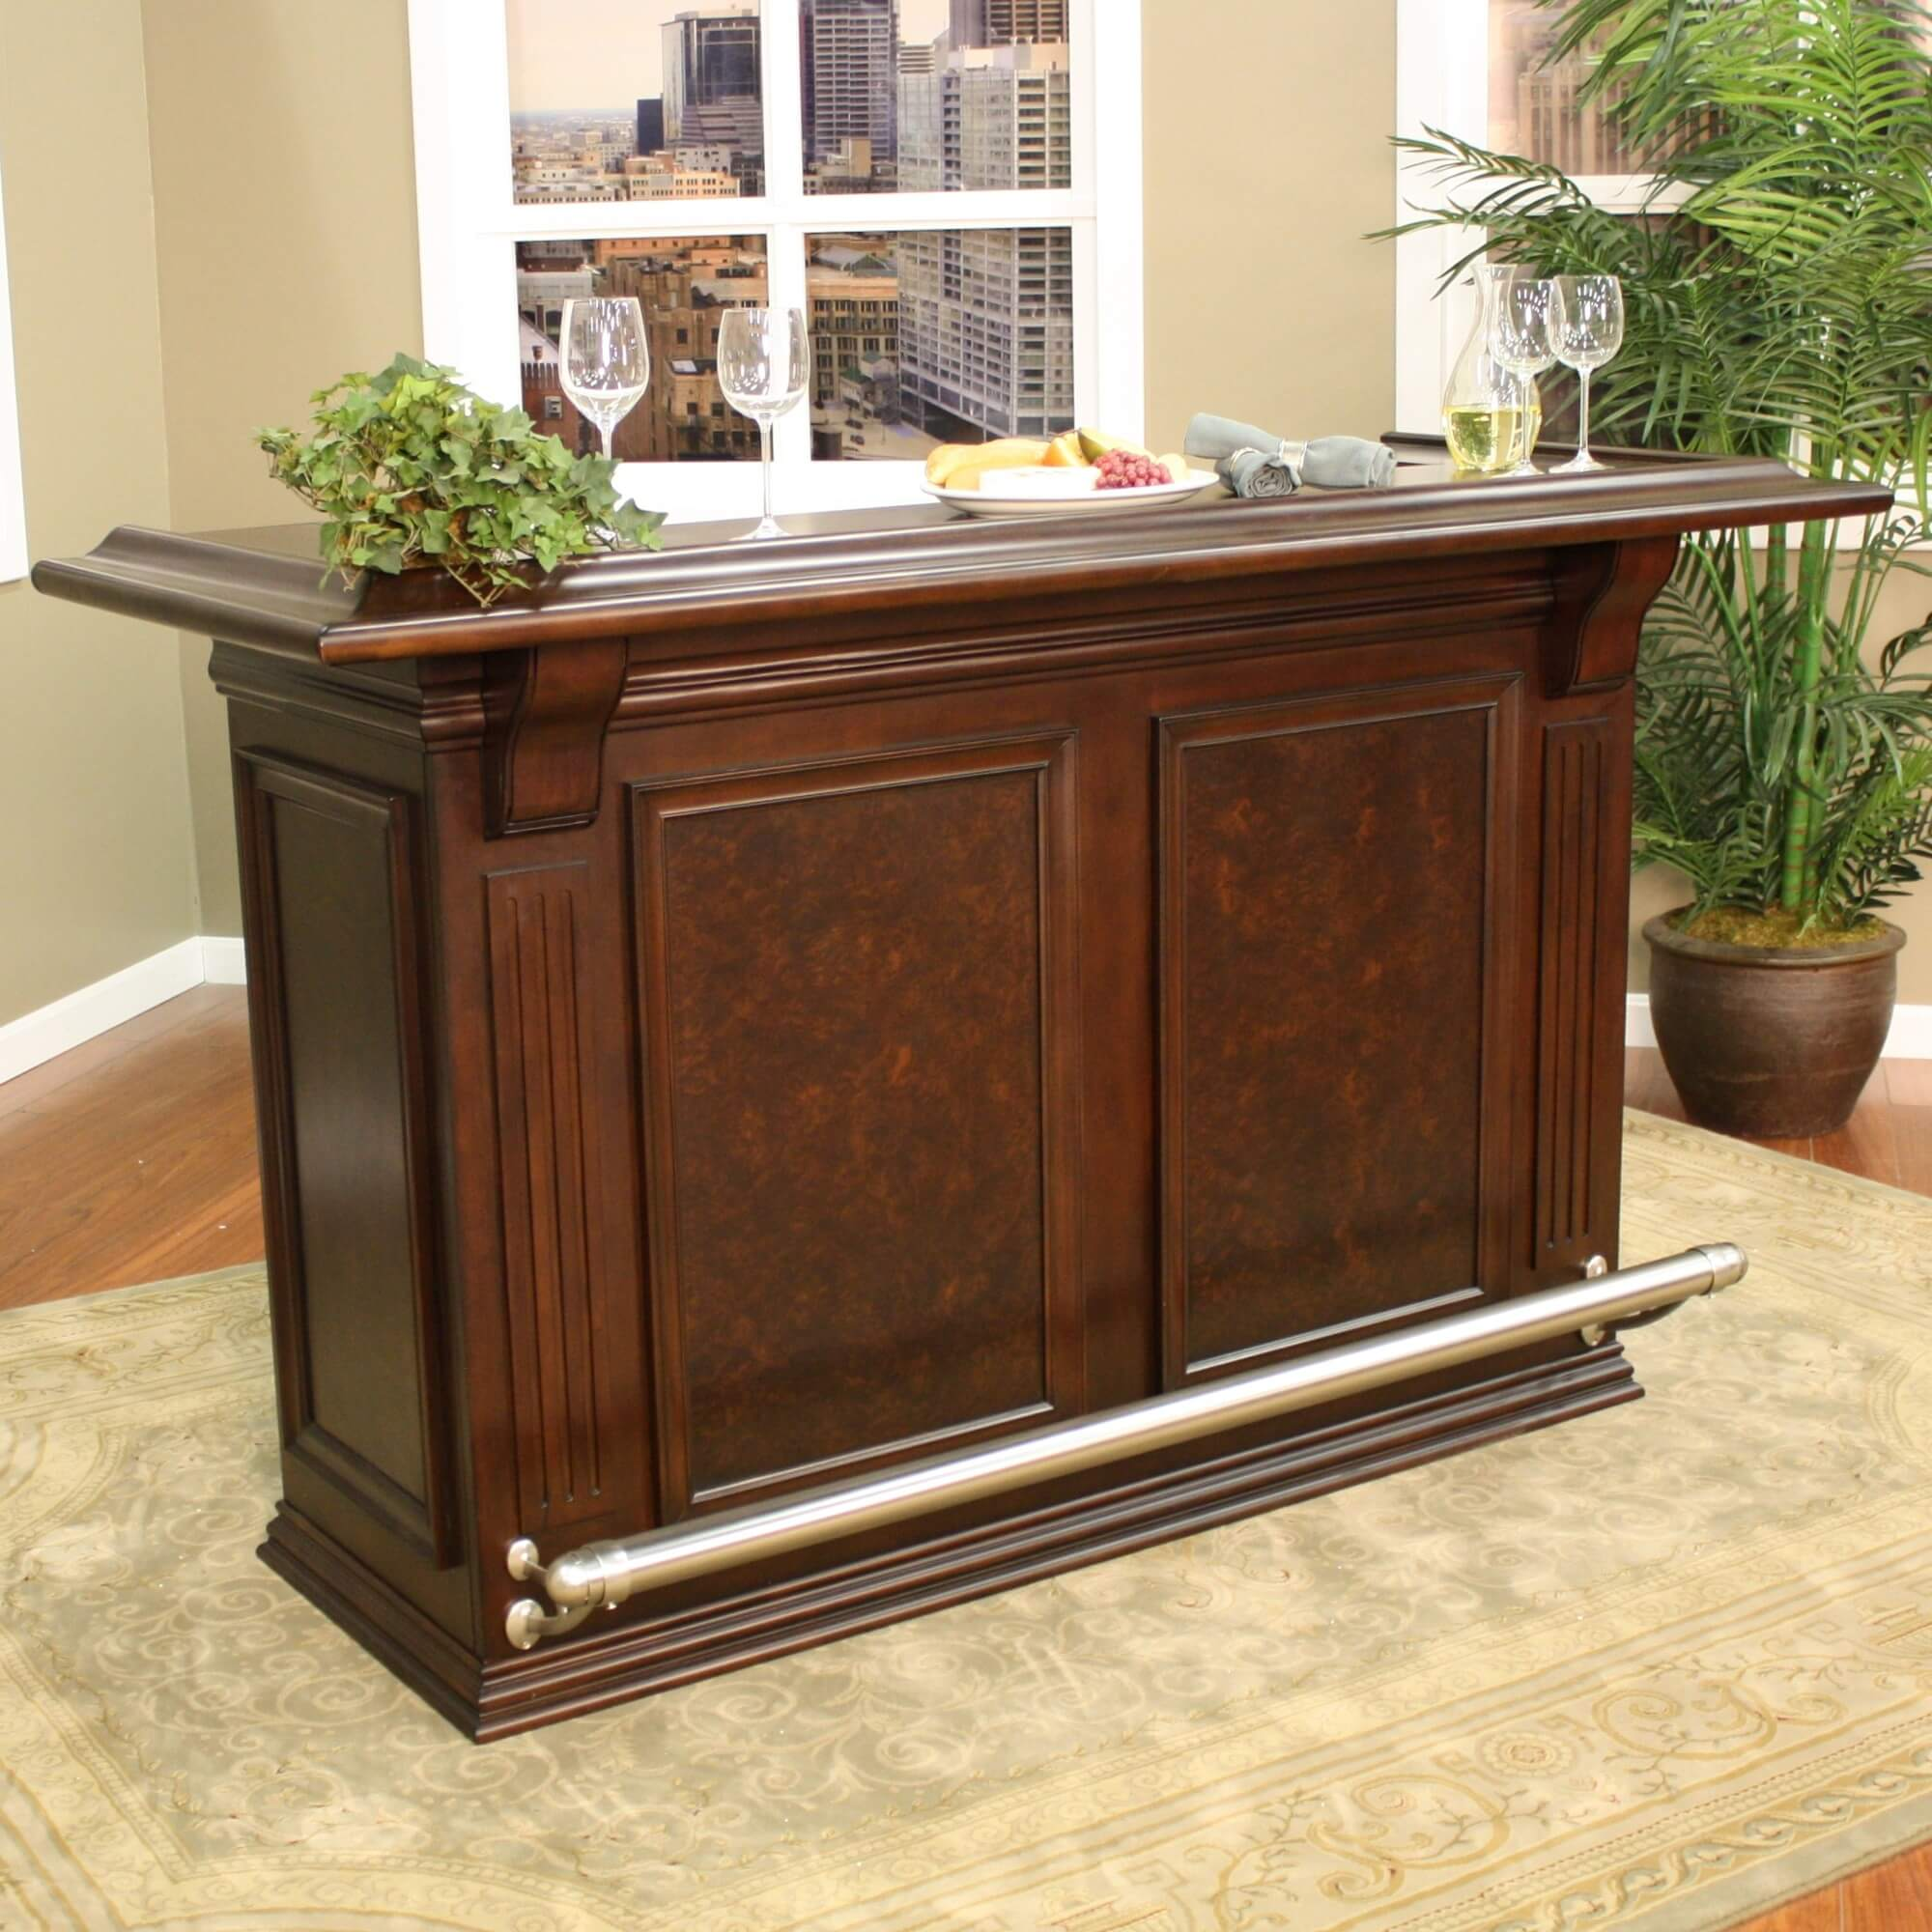 For a smaller design, this home bar offers some great features such as a foot railing and a behind-the-bar preparation counter with built-in ice bucket and small wine rack.